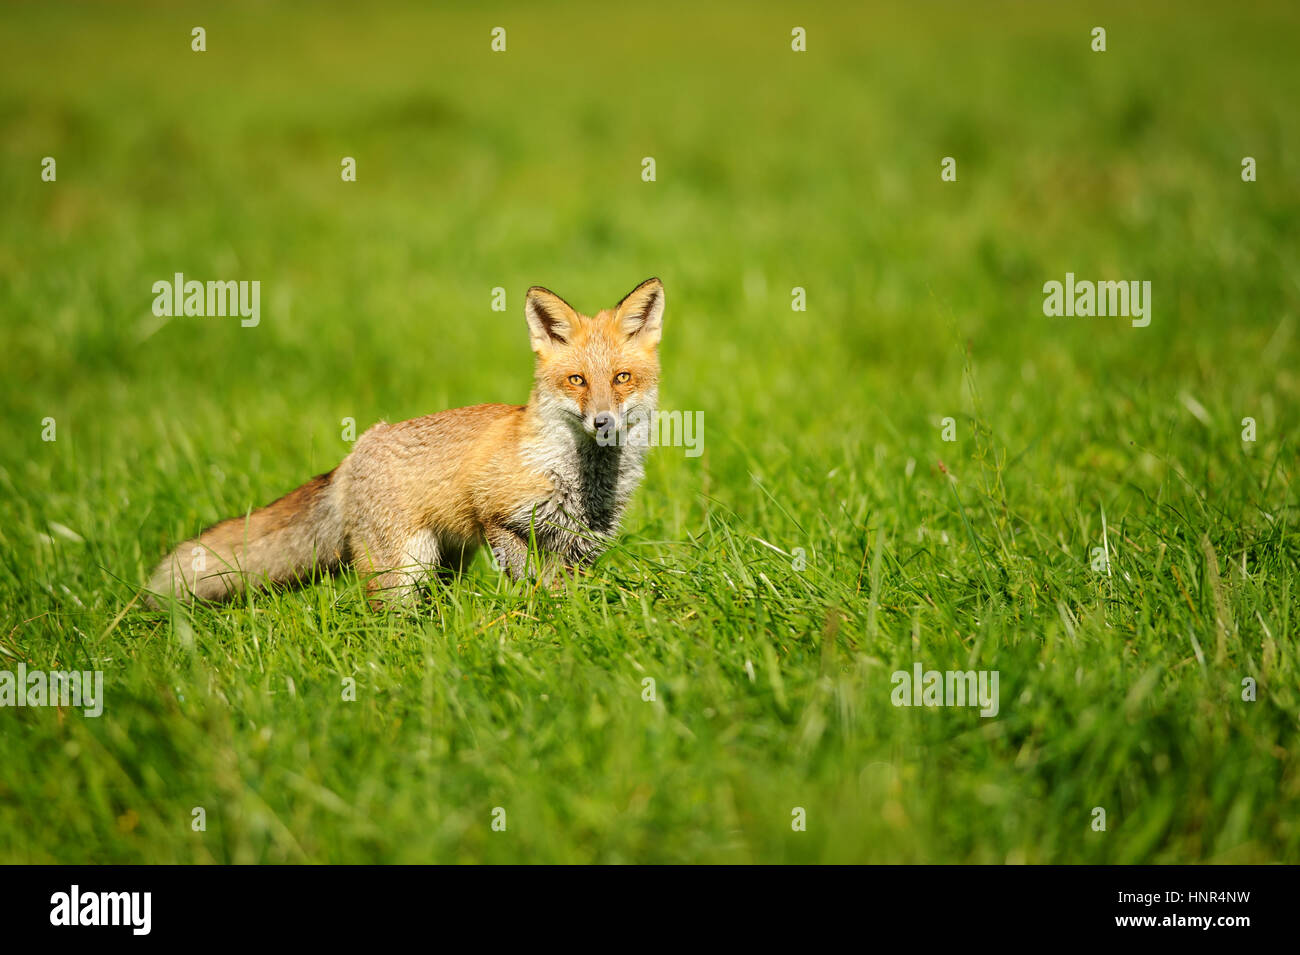 Red fox standing in green grass from front view Stock Photo